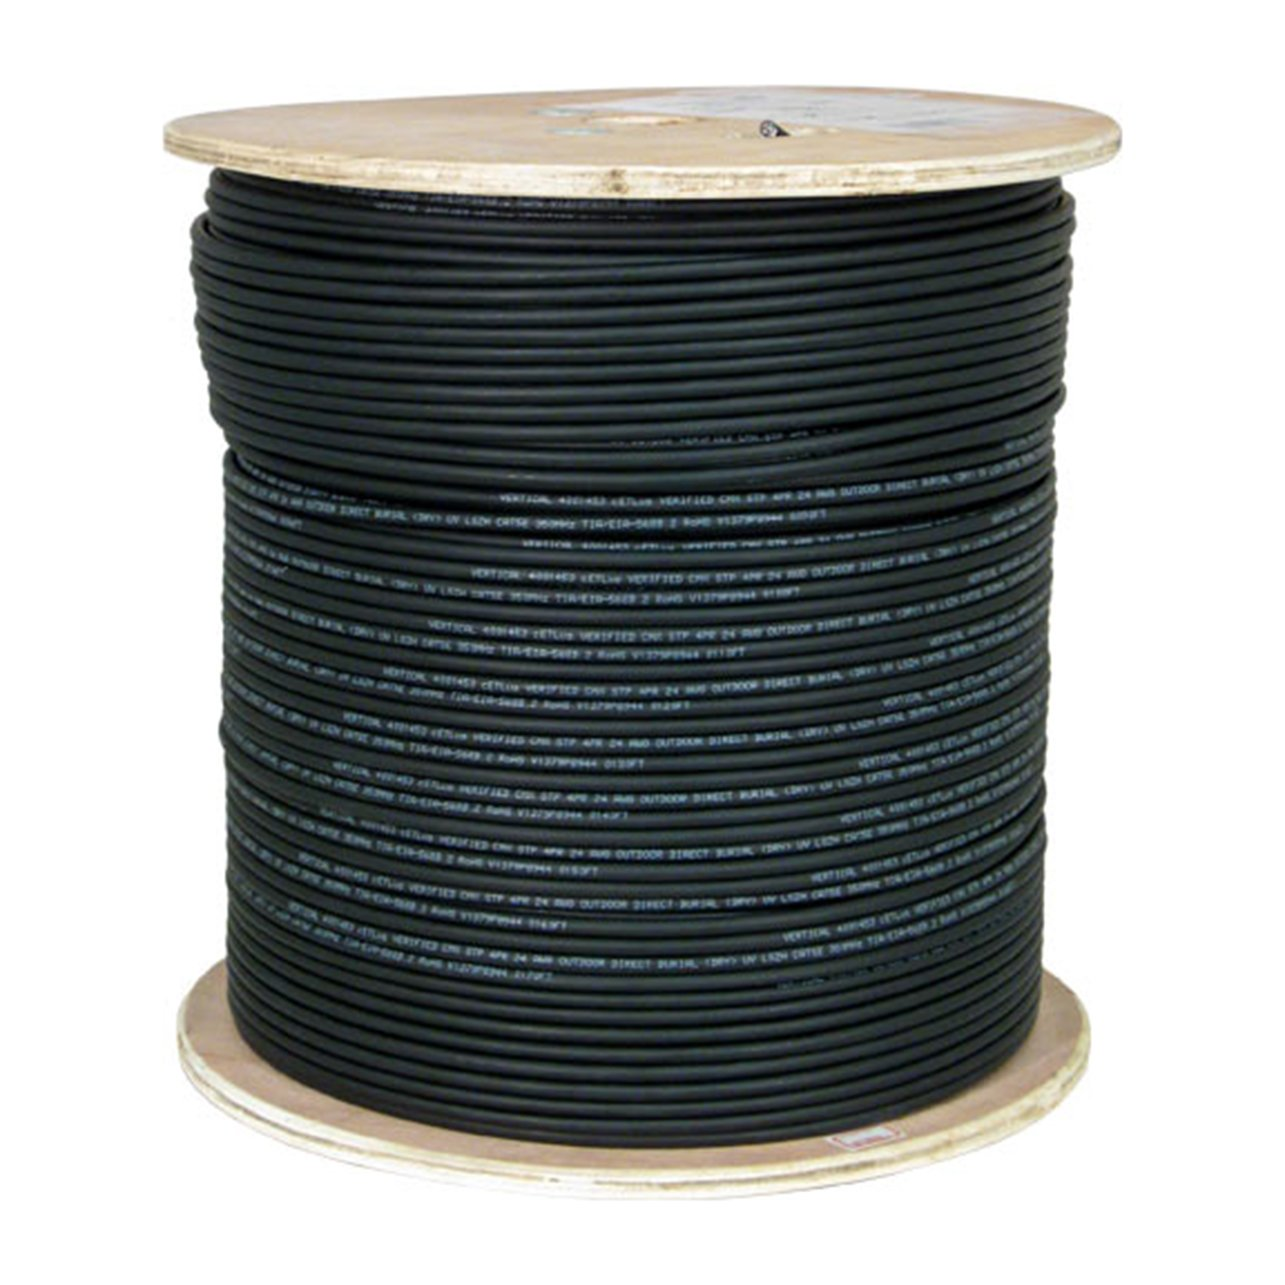 Vertical Cable CAT5E, Shielded Waterproof Tape, Direct Burial, 2000ft, Black, Bulk Ethernet Cable, Wooden Spool